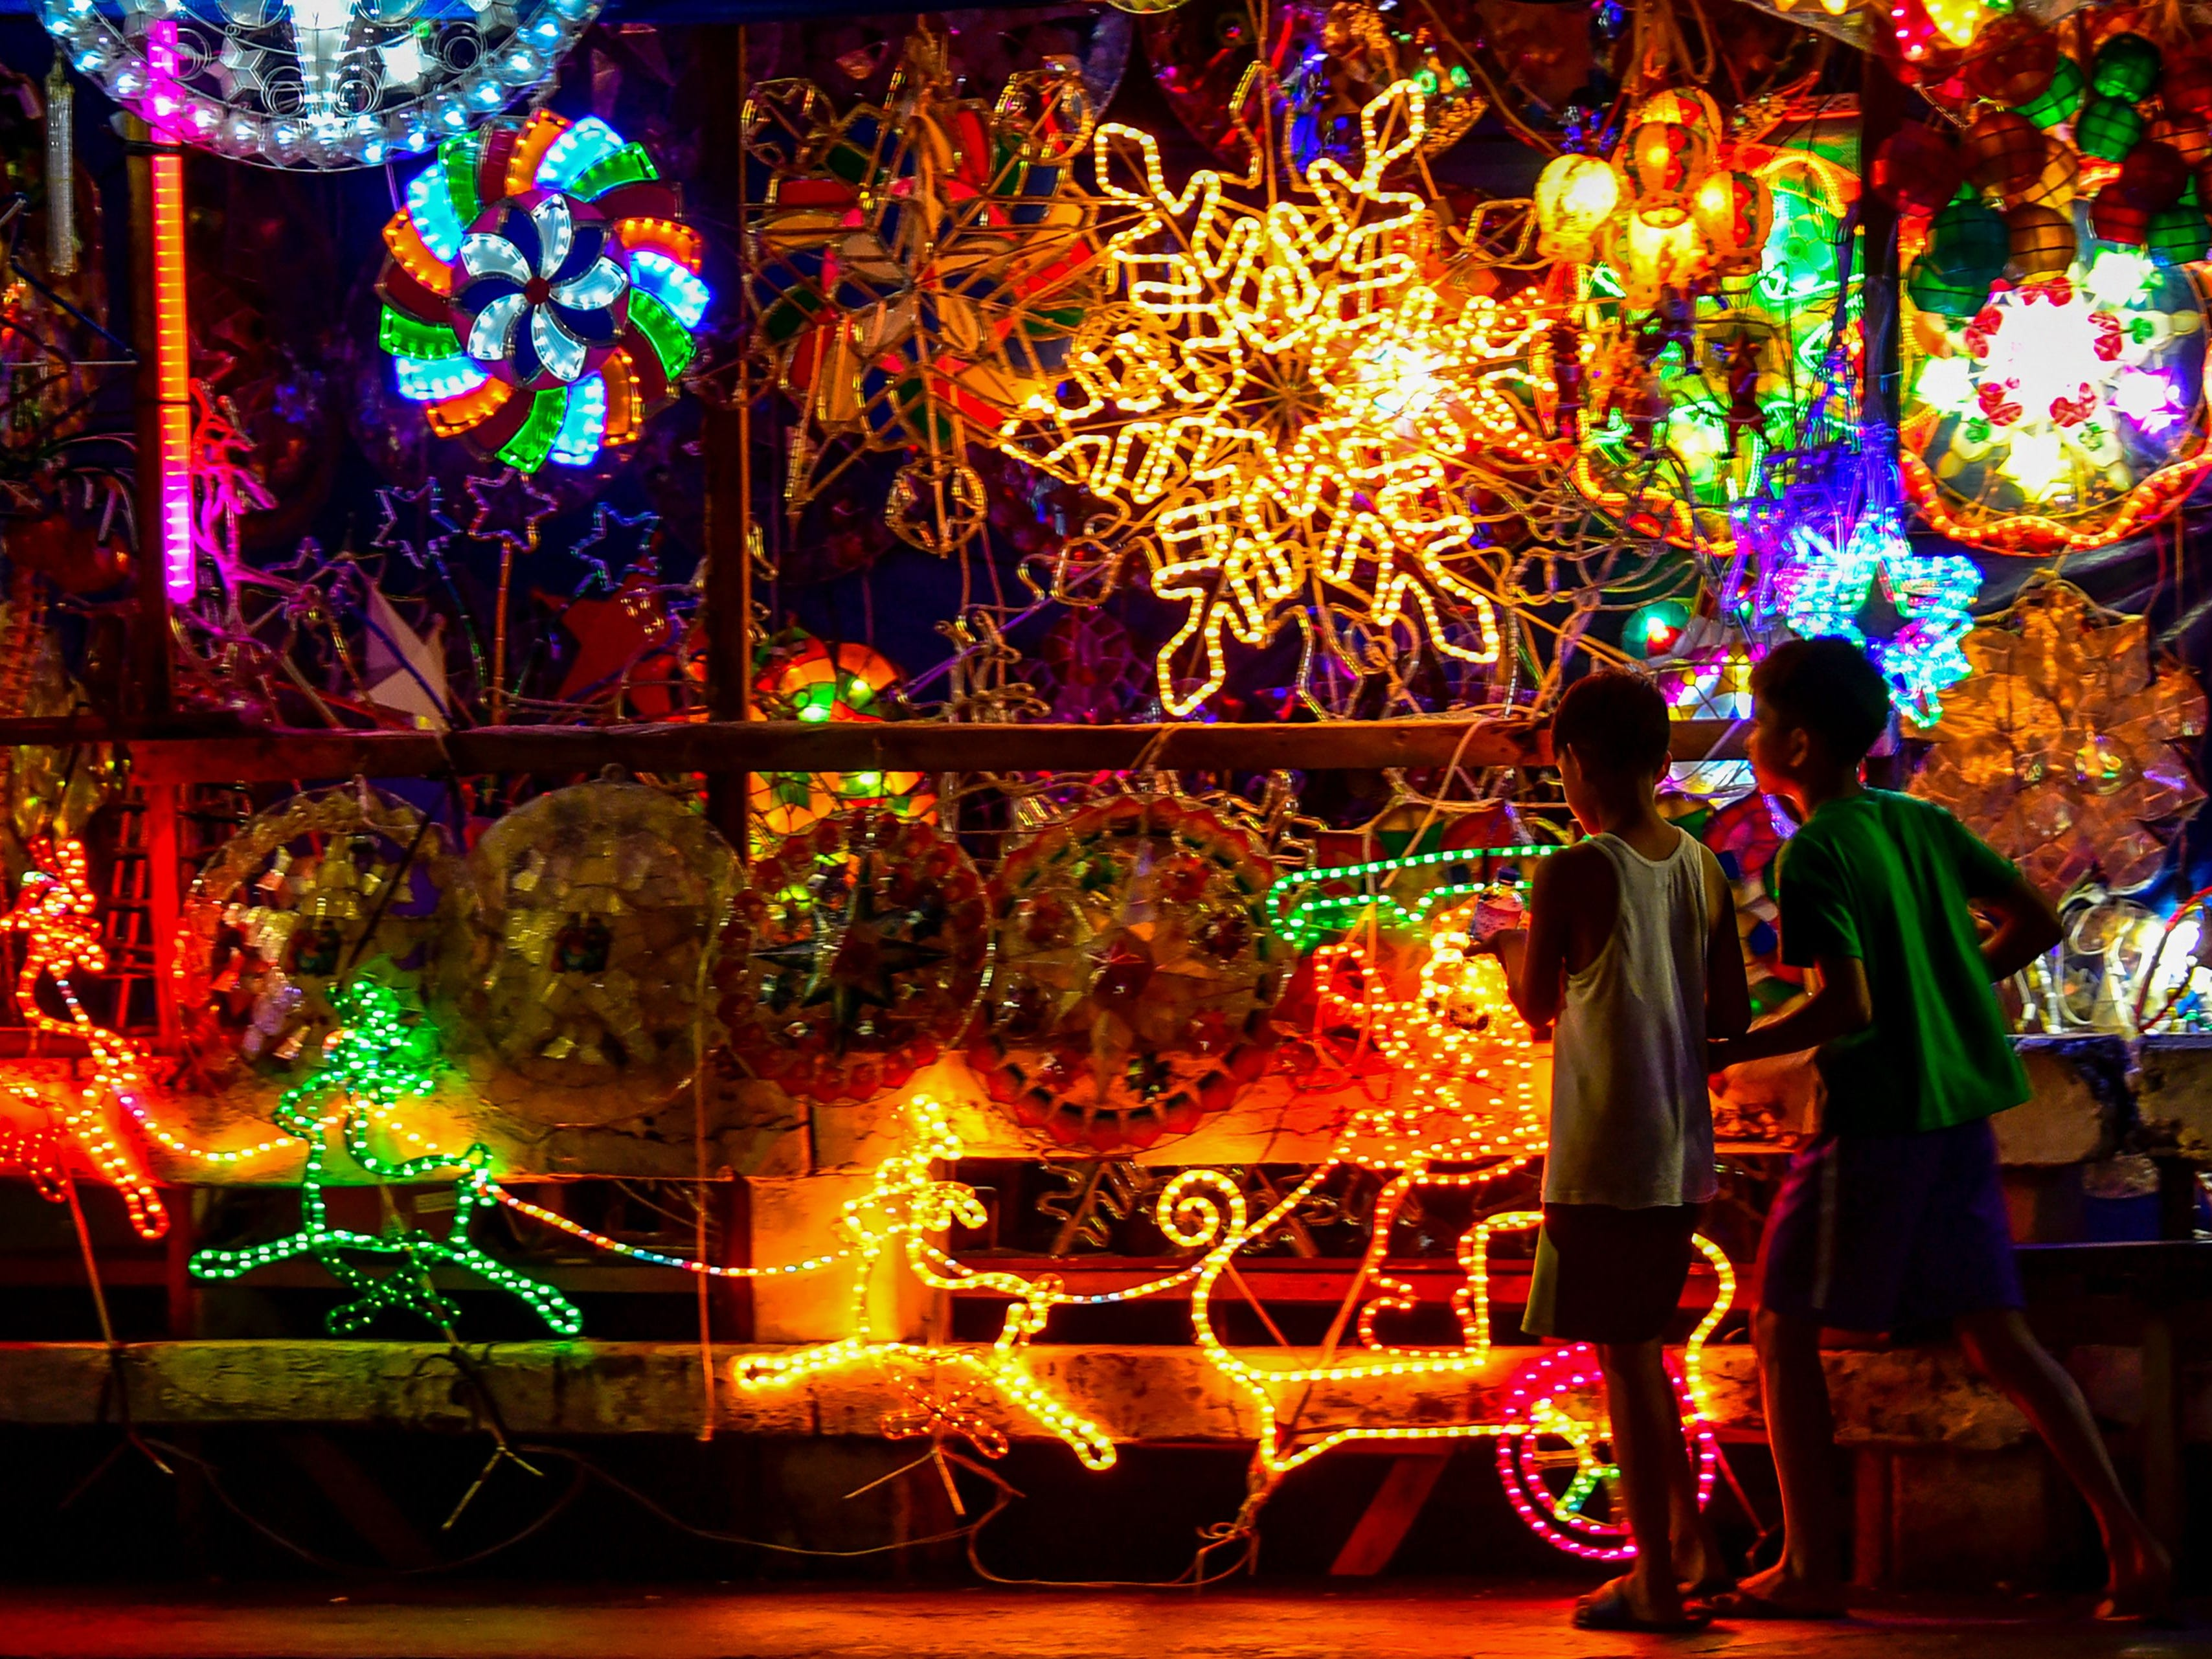 Children walk past Christmas lanterns known locally as 'parol' on display along a street in Manila on December 24, 2018. - Parol are star-shaped Christmas lanterns patterned to resemble the Star of Bethlehem, and are made from bamboo covered with paper. They are displayed in houses, offices, buildings, and streets, and according to Filipino tradition and beliefs, also represent the victory of light over darkness.